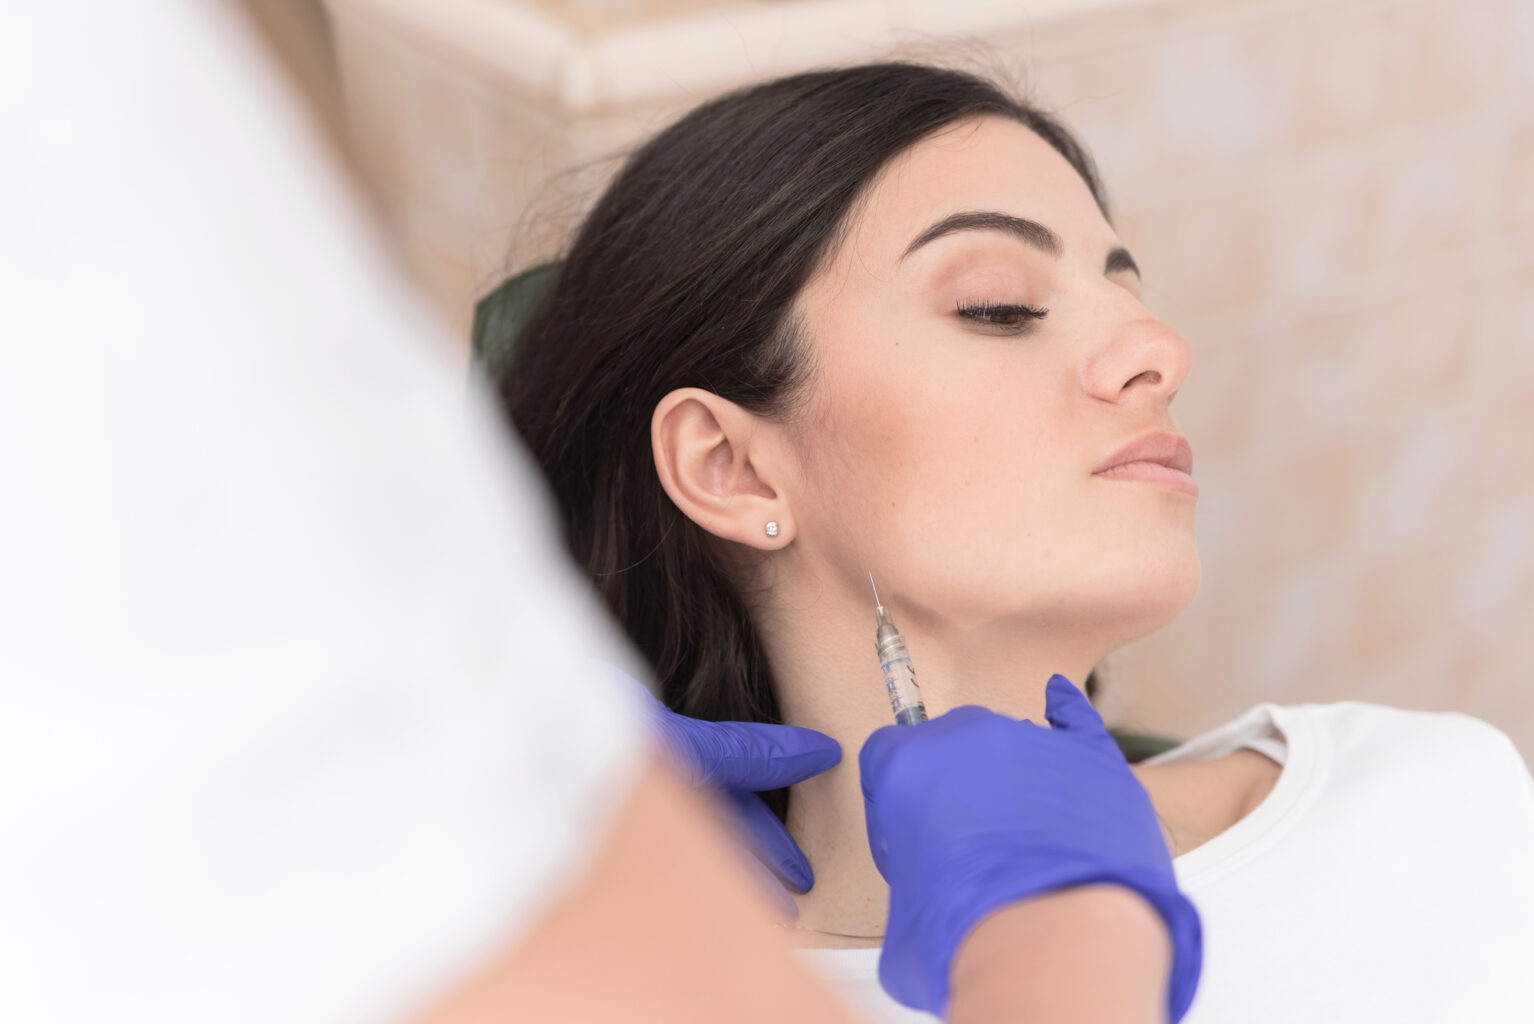 woman getting BOTOX injections in jaw